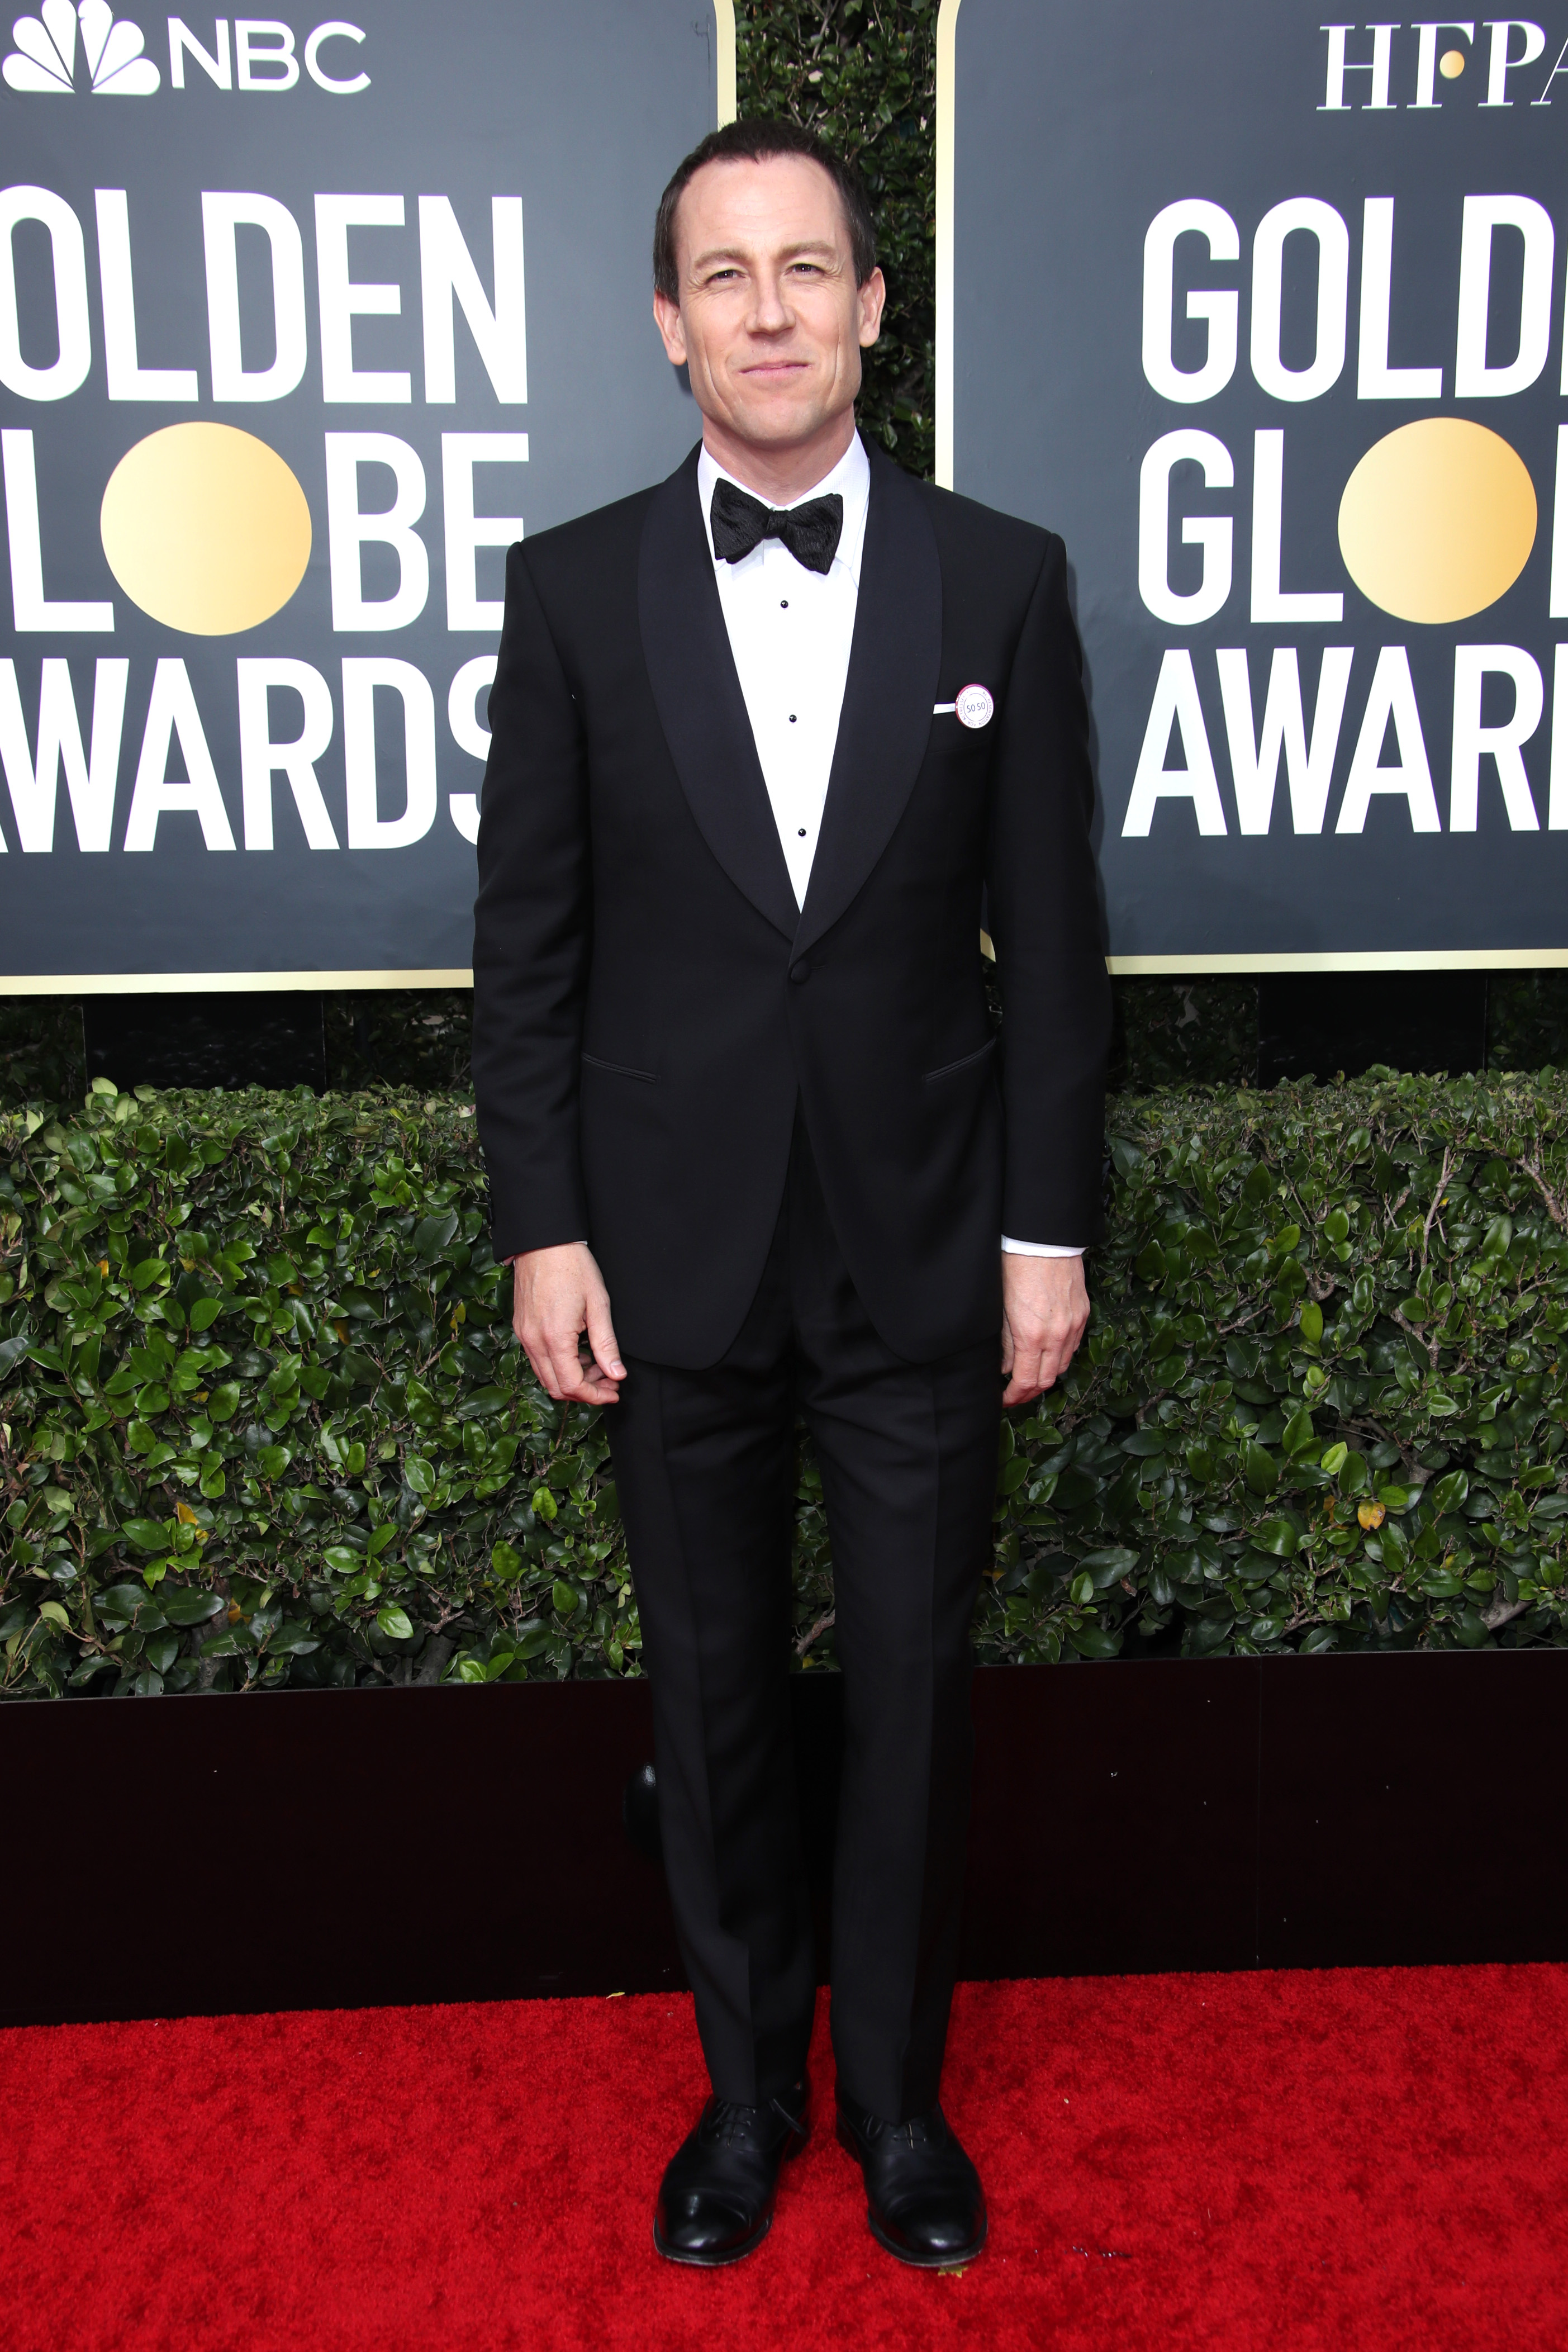 Tobias Menzies77th Annual Golden Globe Awards, Arrivals, Los Angeles, USA - 05 Jan 2020